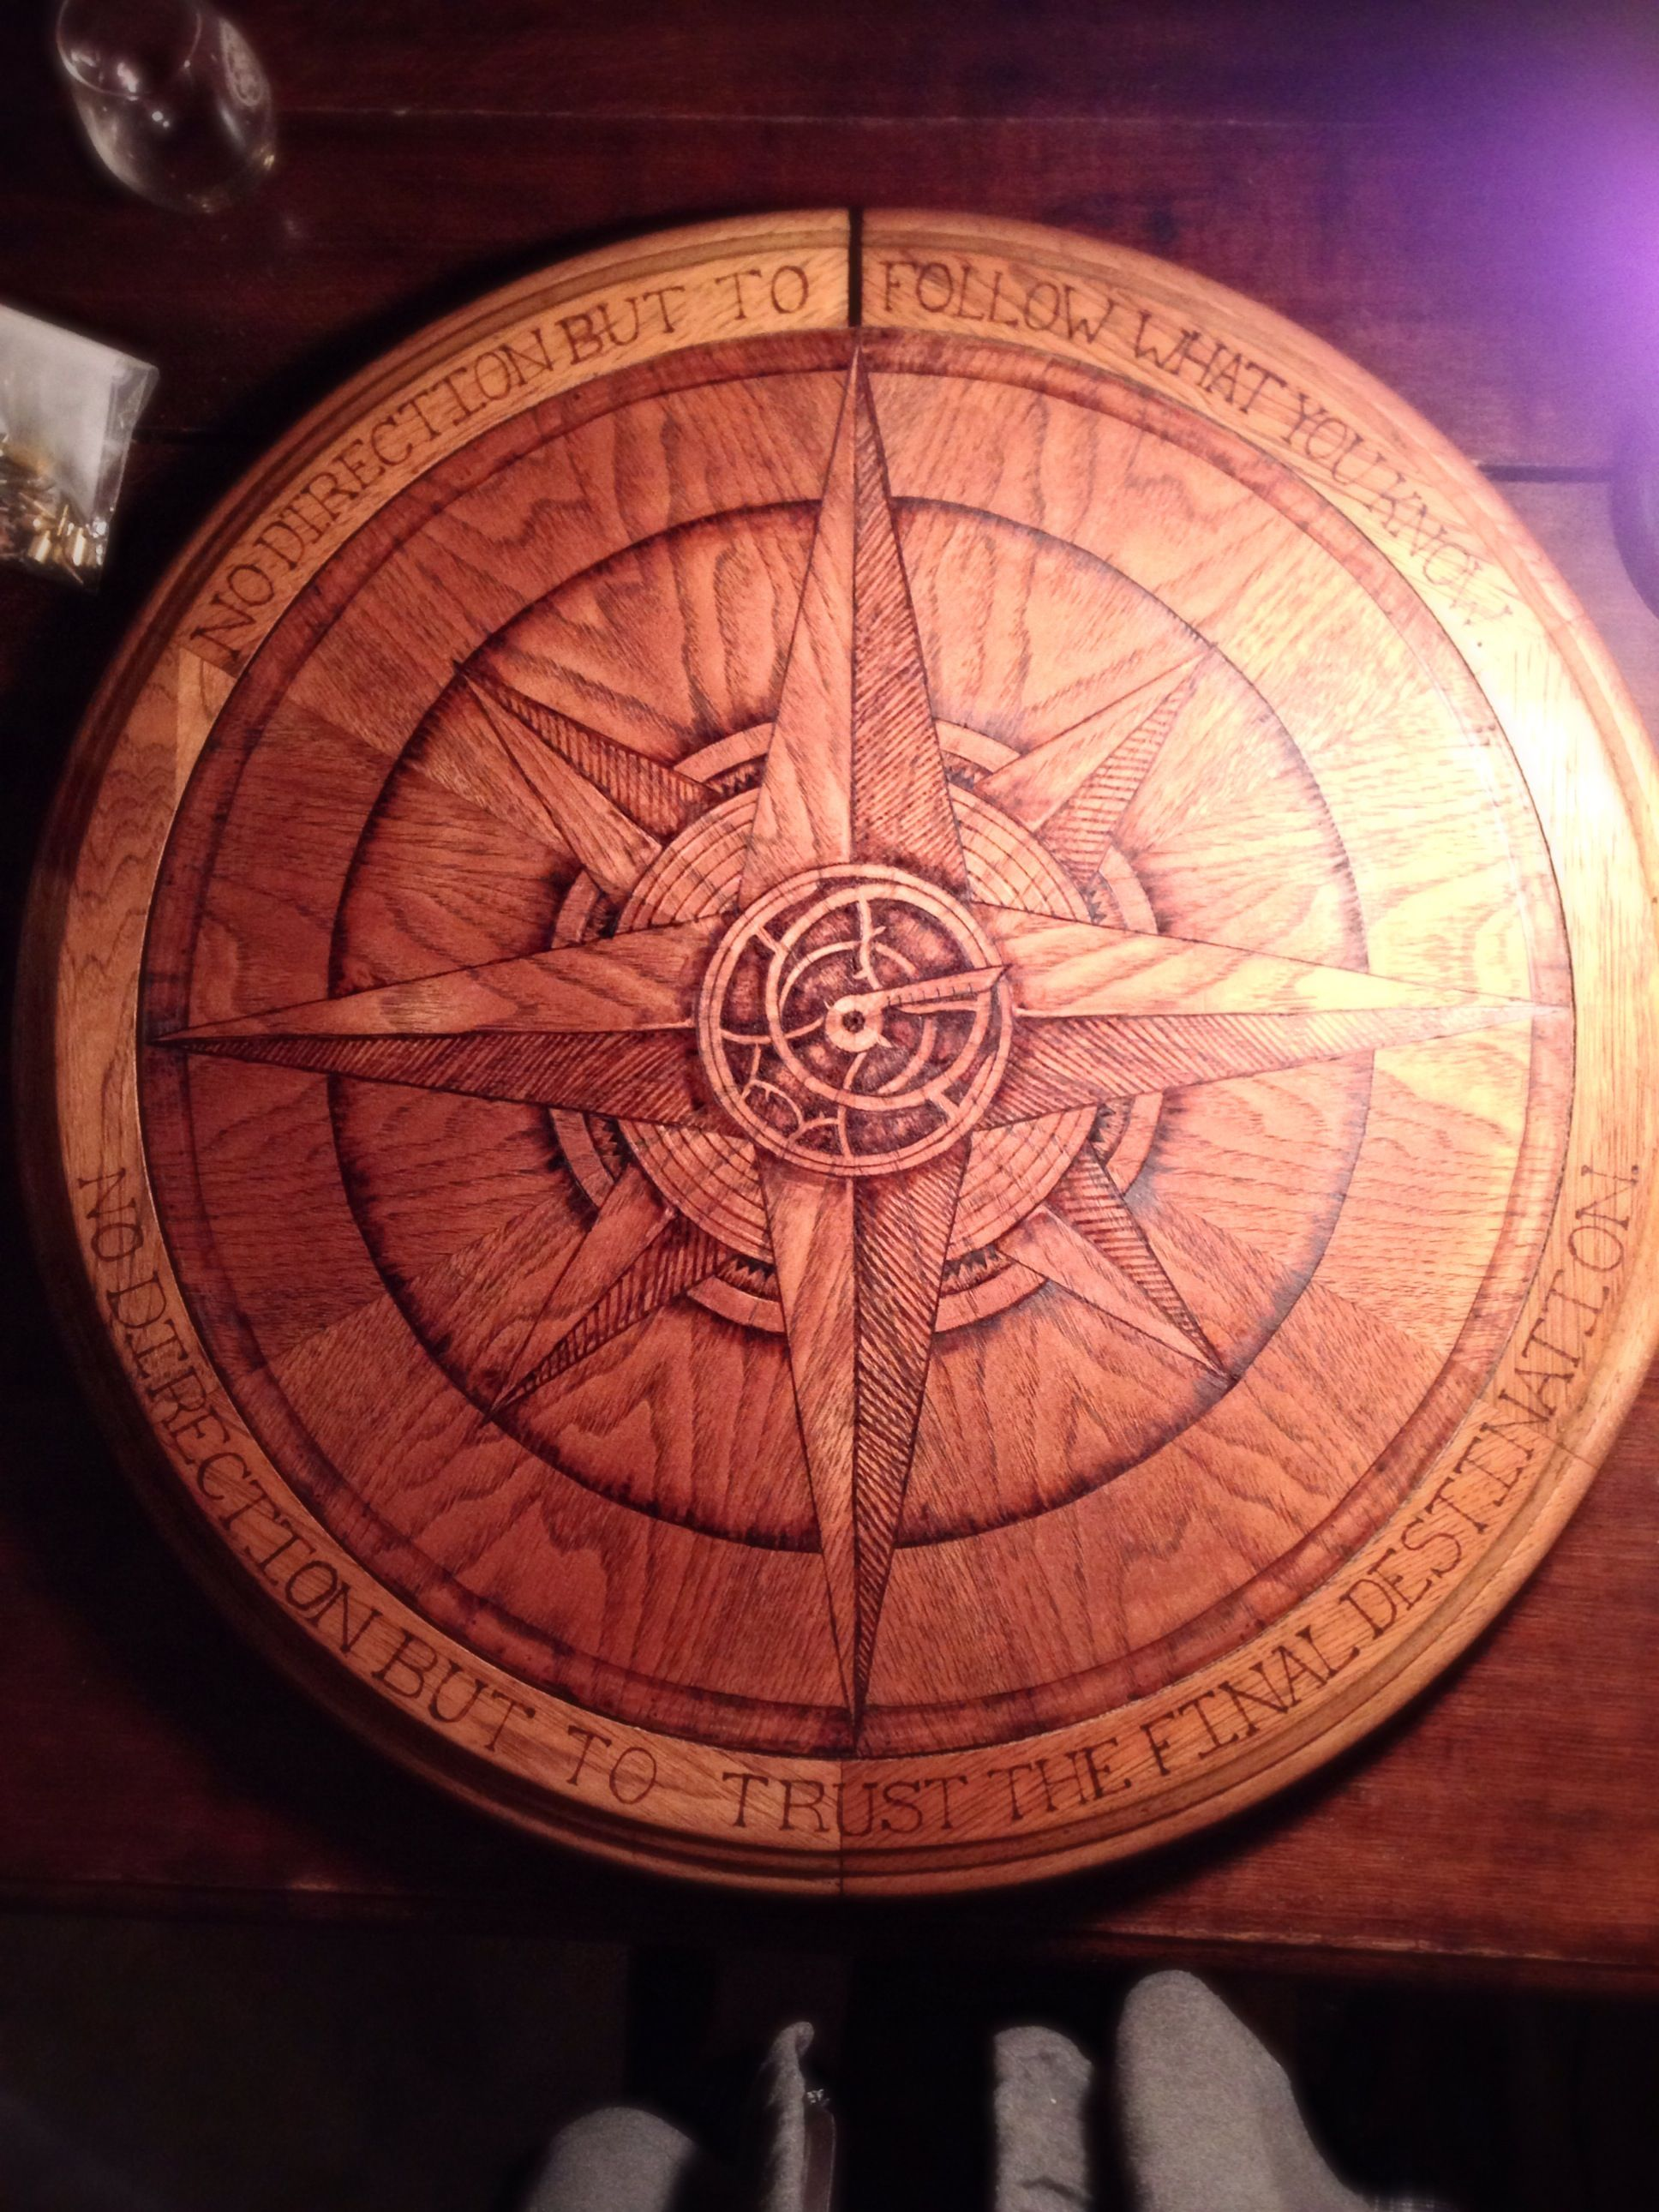 Tabletop pyrography compass rose with puscifer quote wood burning art wood burning patterns